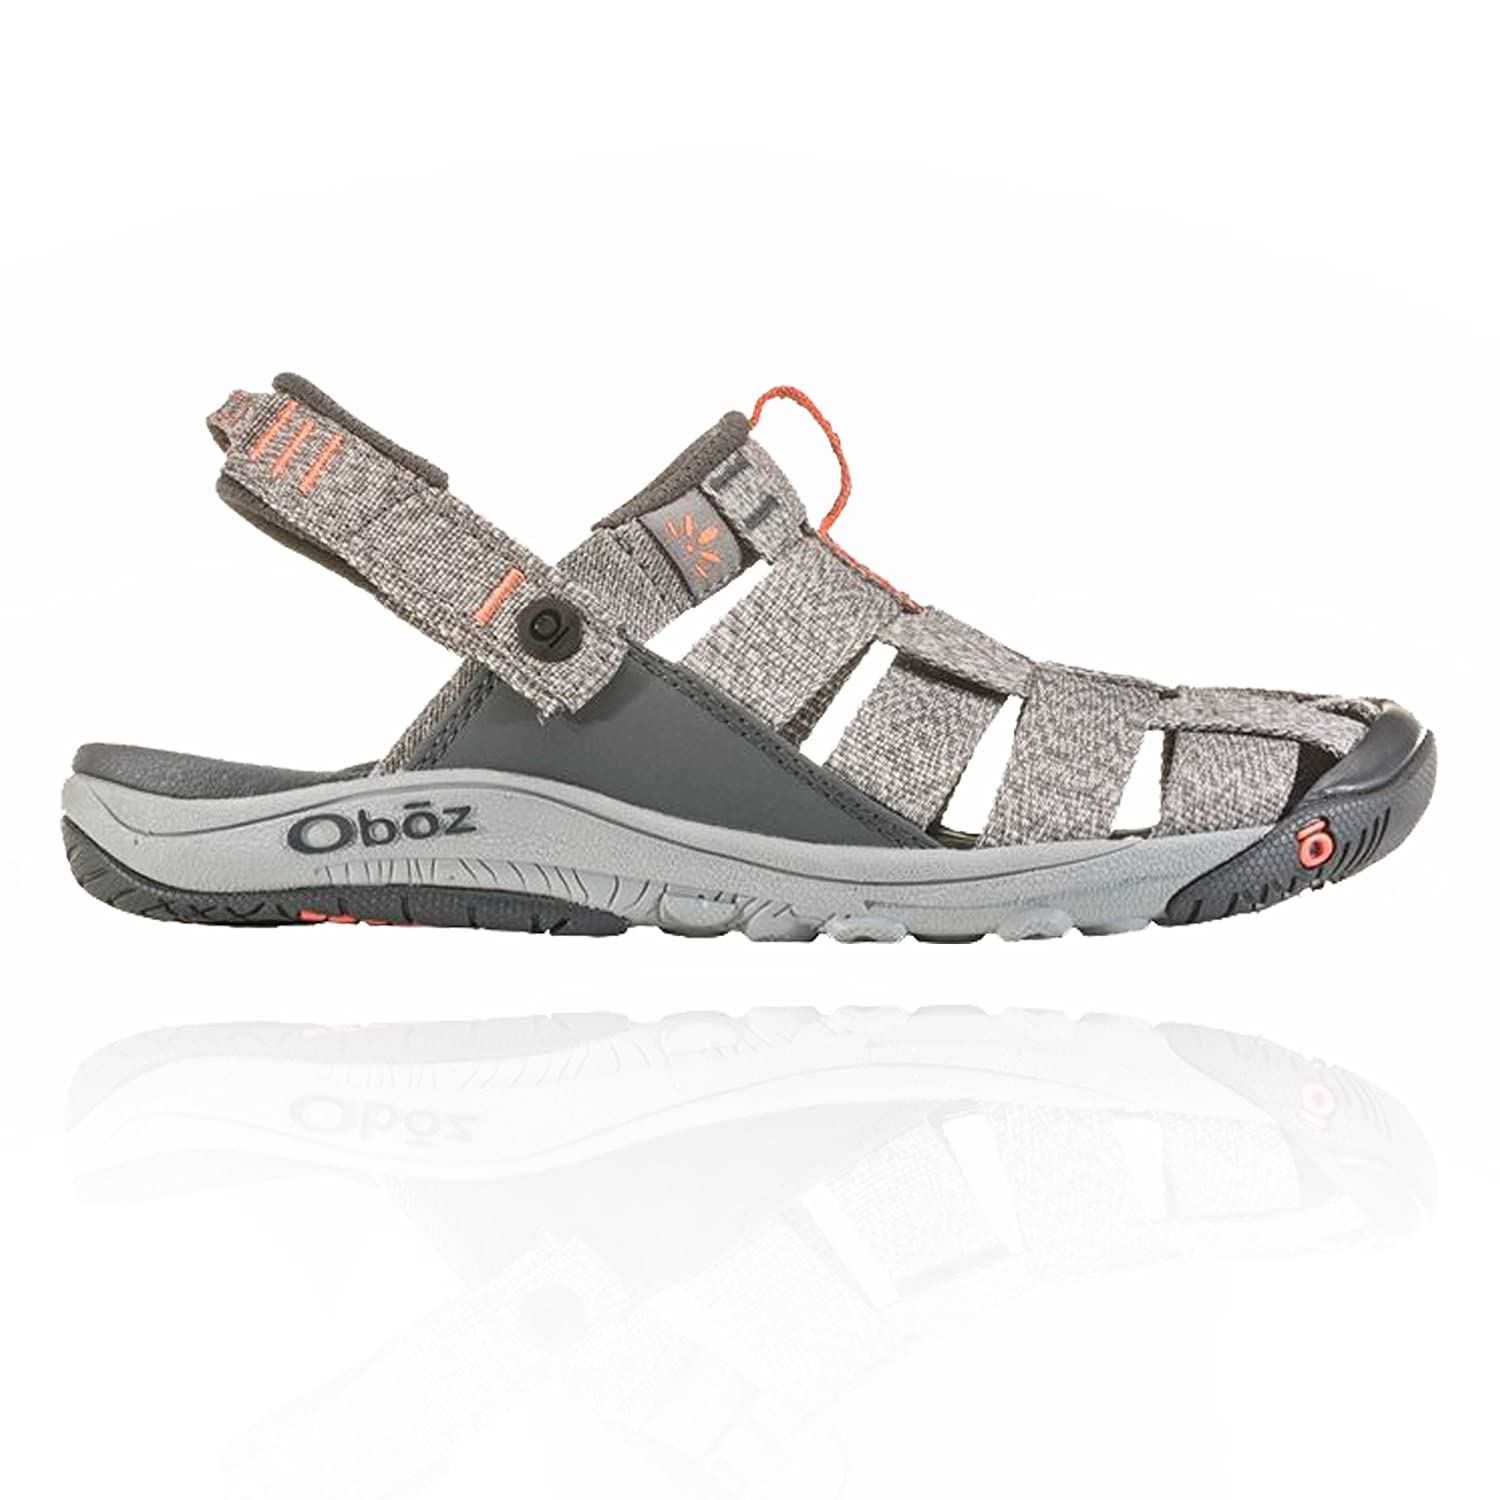 Oboz Women's Campster Sandal B074N7XT4V 11 B US|Heather Gray/Coral